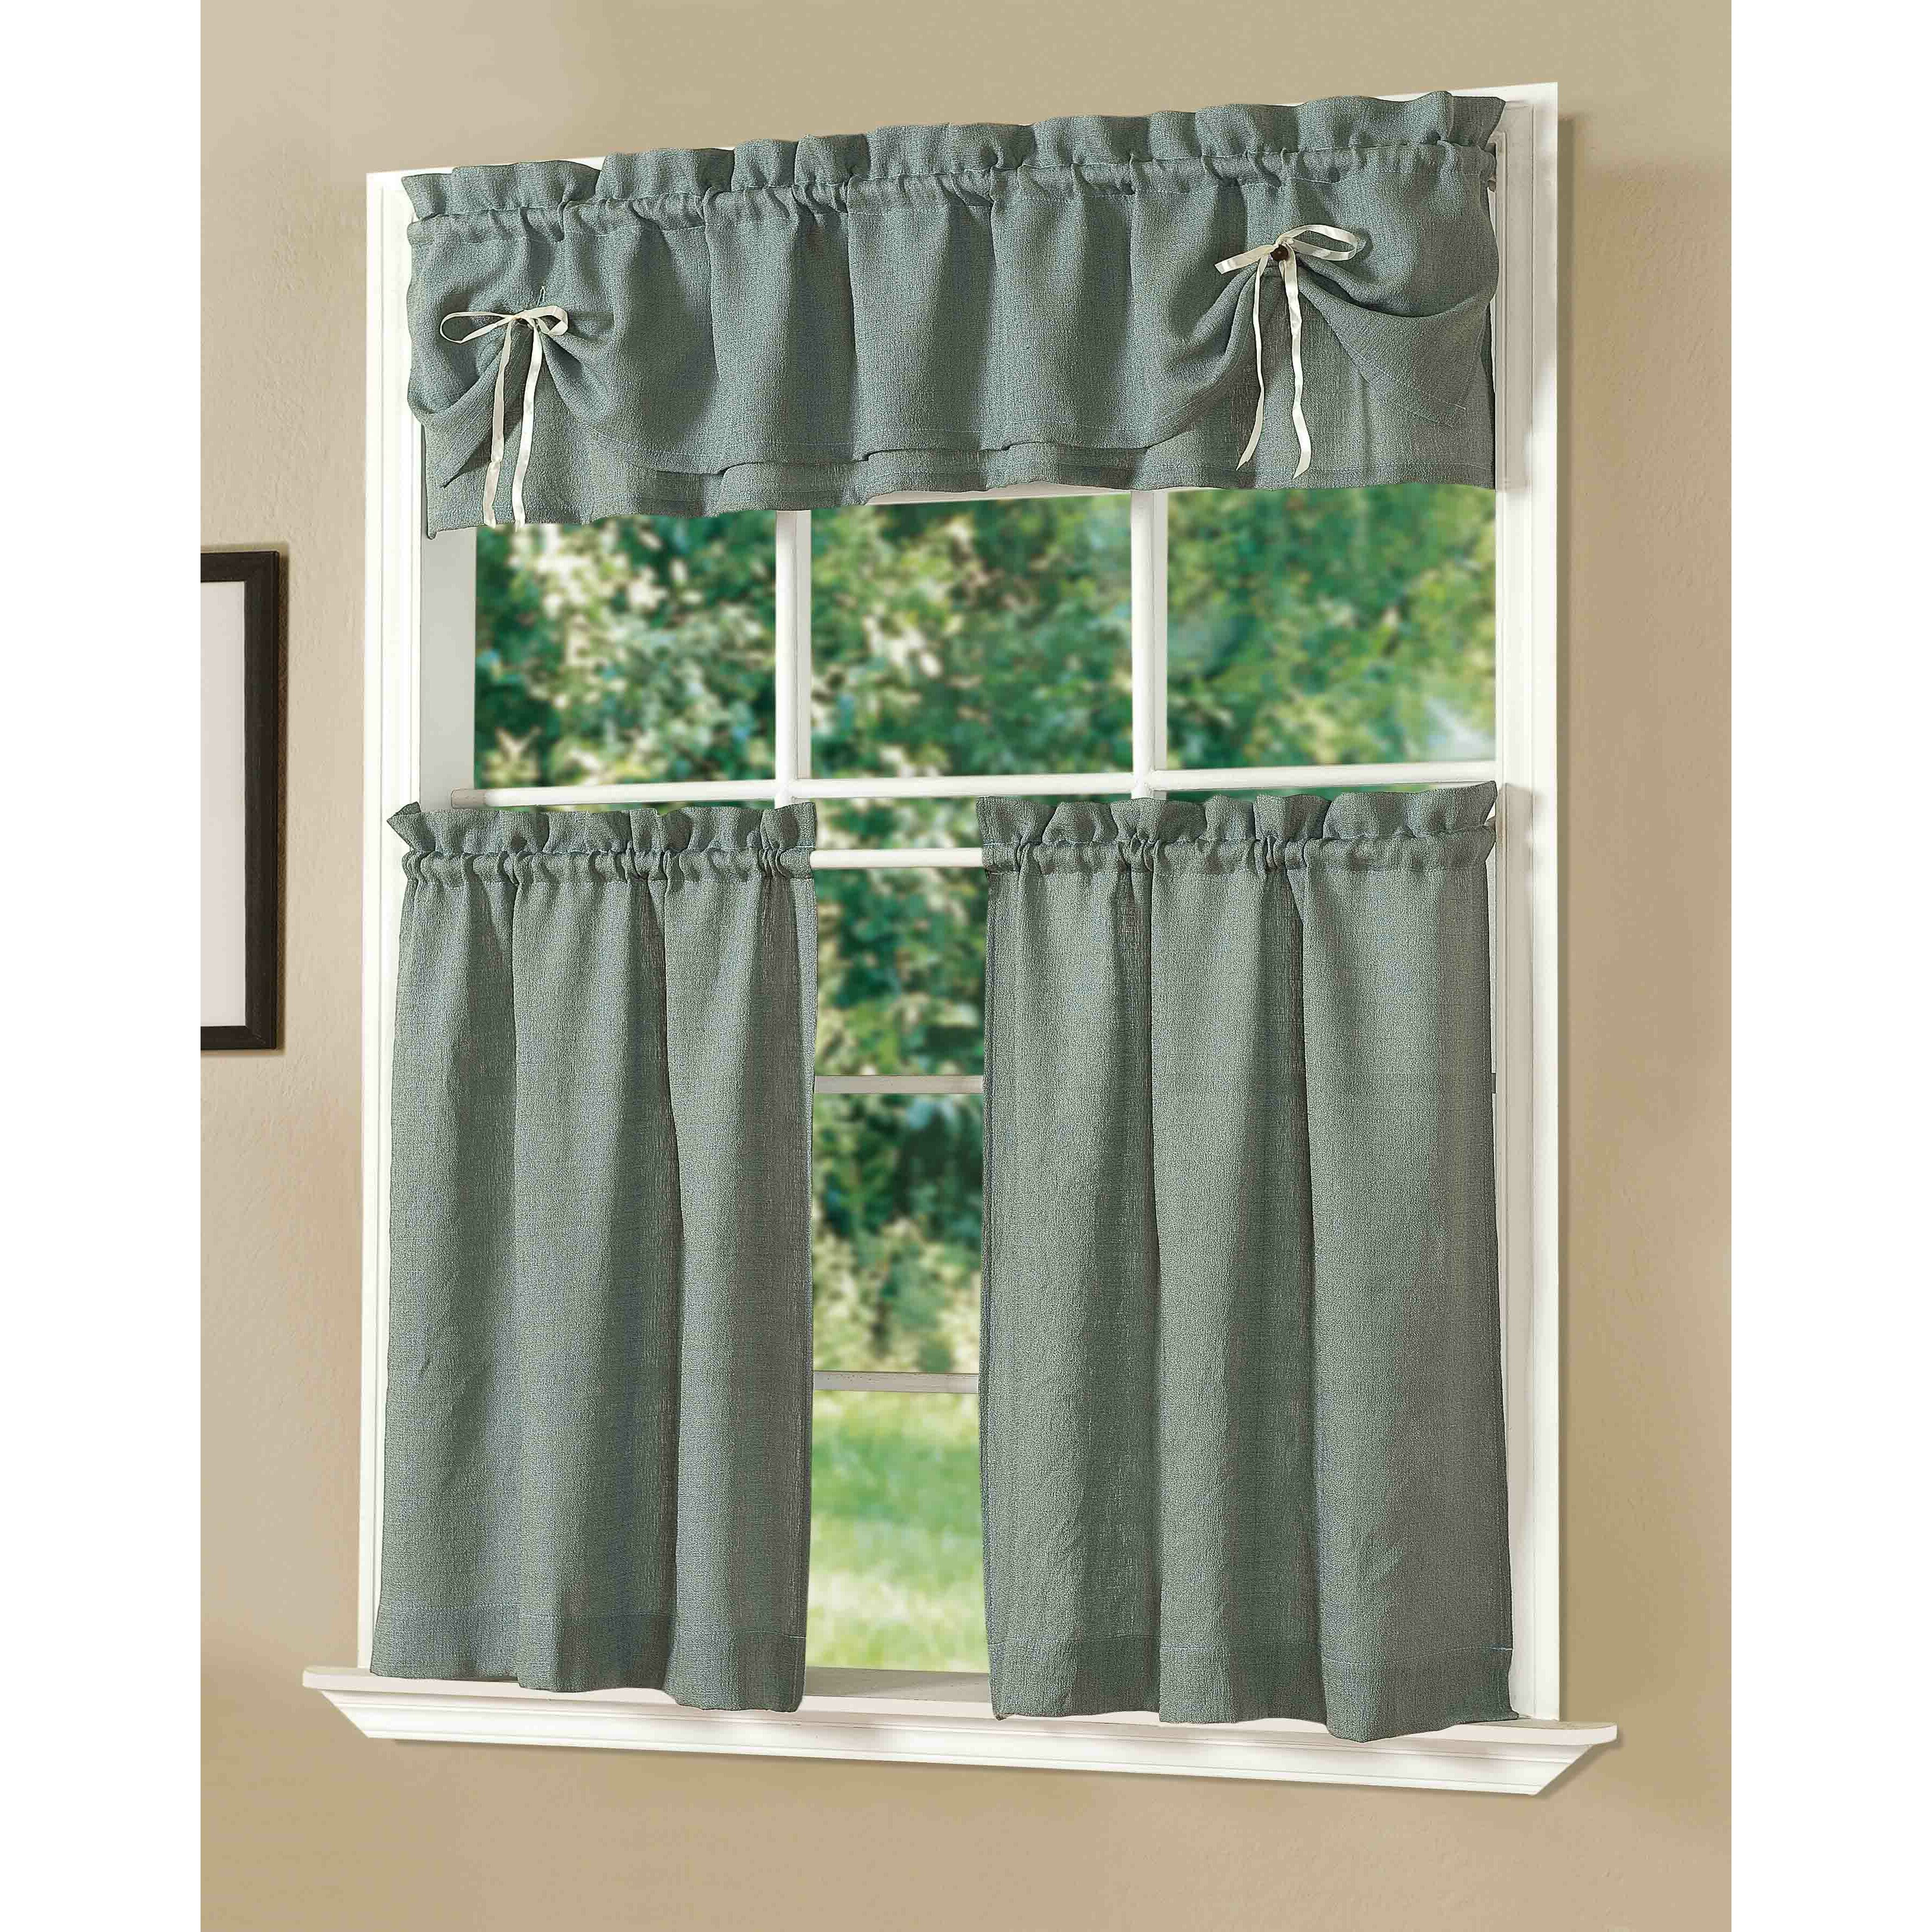 Kitchen Curtains Sets: Dainty Home Kitchen Lucia Curtain Set & Reviews